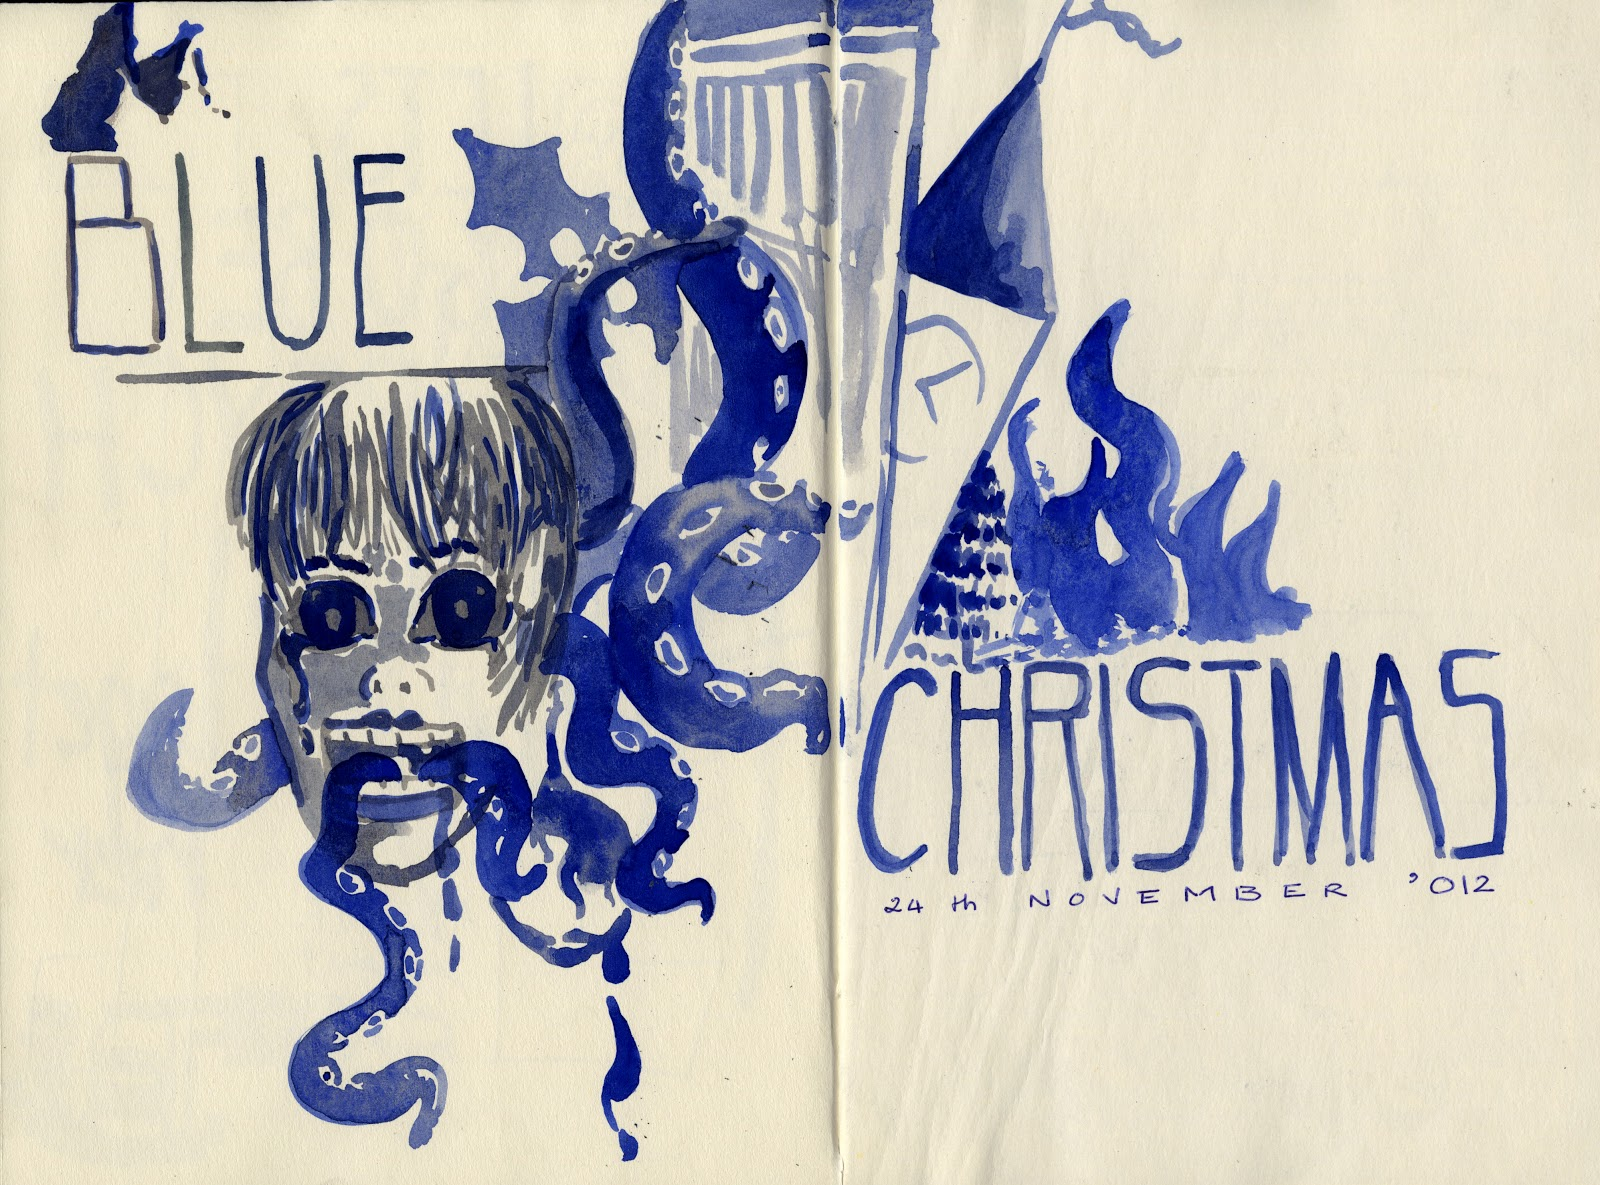 ill have a blue christmas without you ill be so blue just thinking about you decorations of red on a green christmas tree wont be the same dear - I Ll Have A Blue Christmas